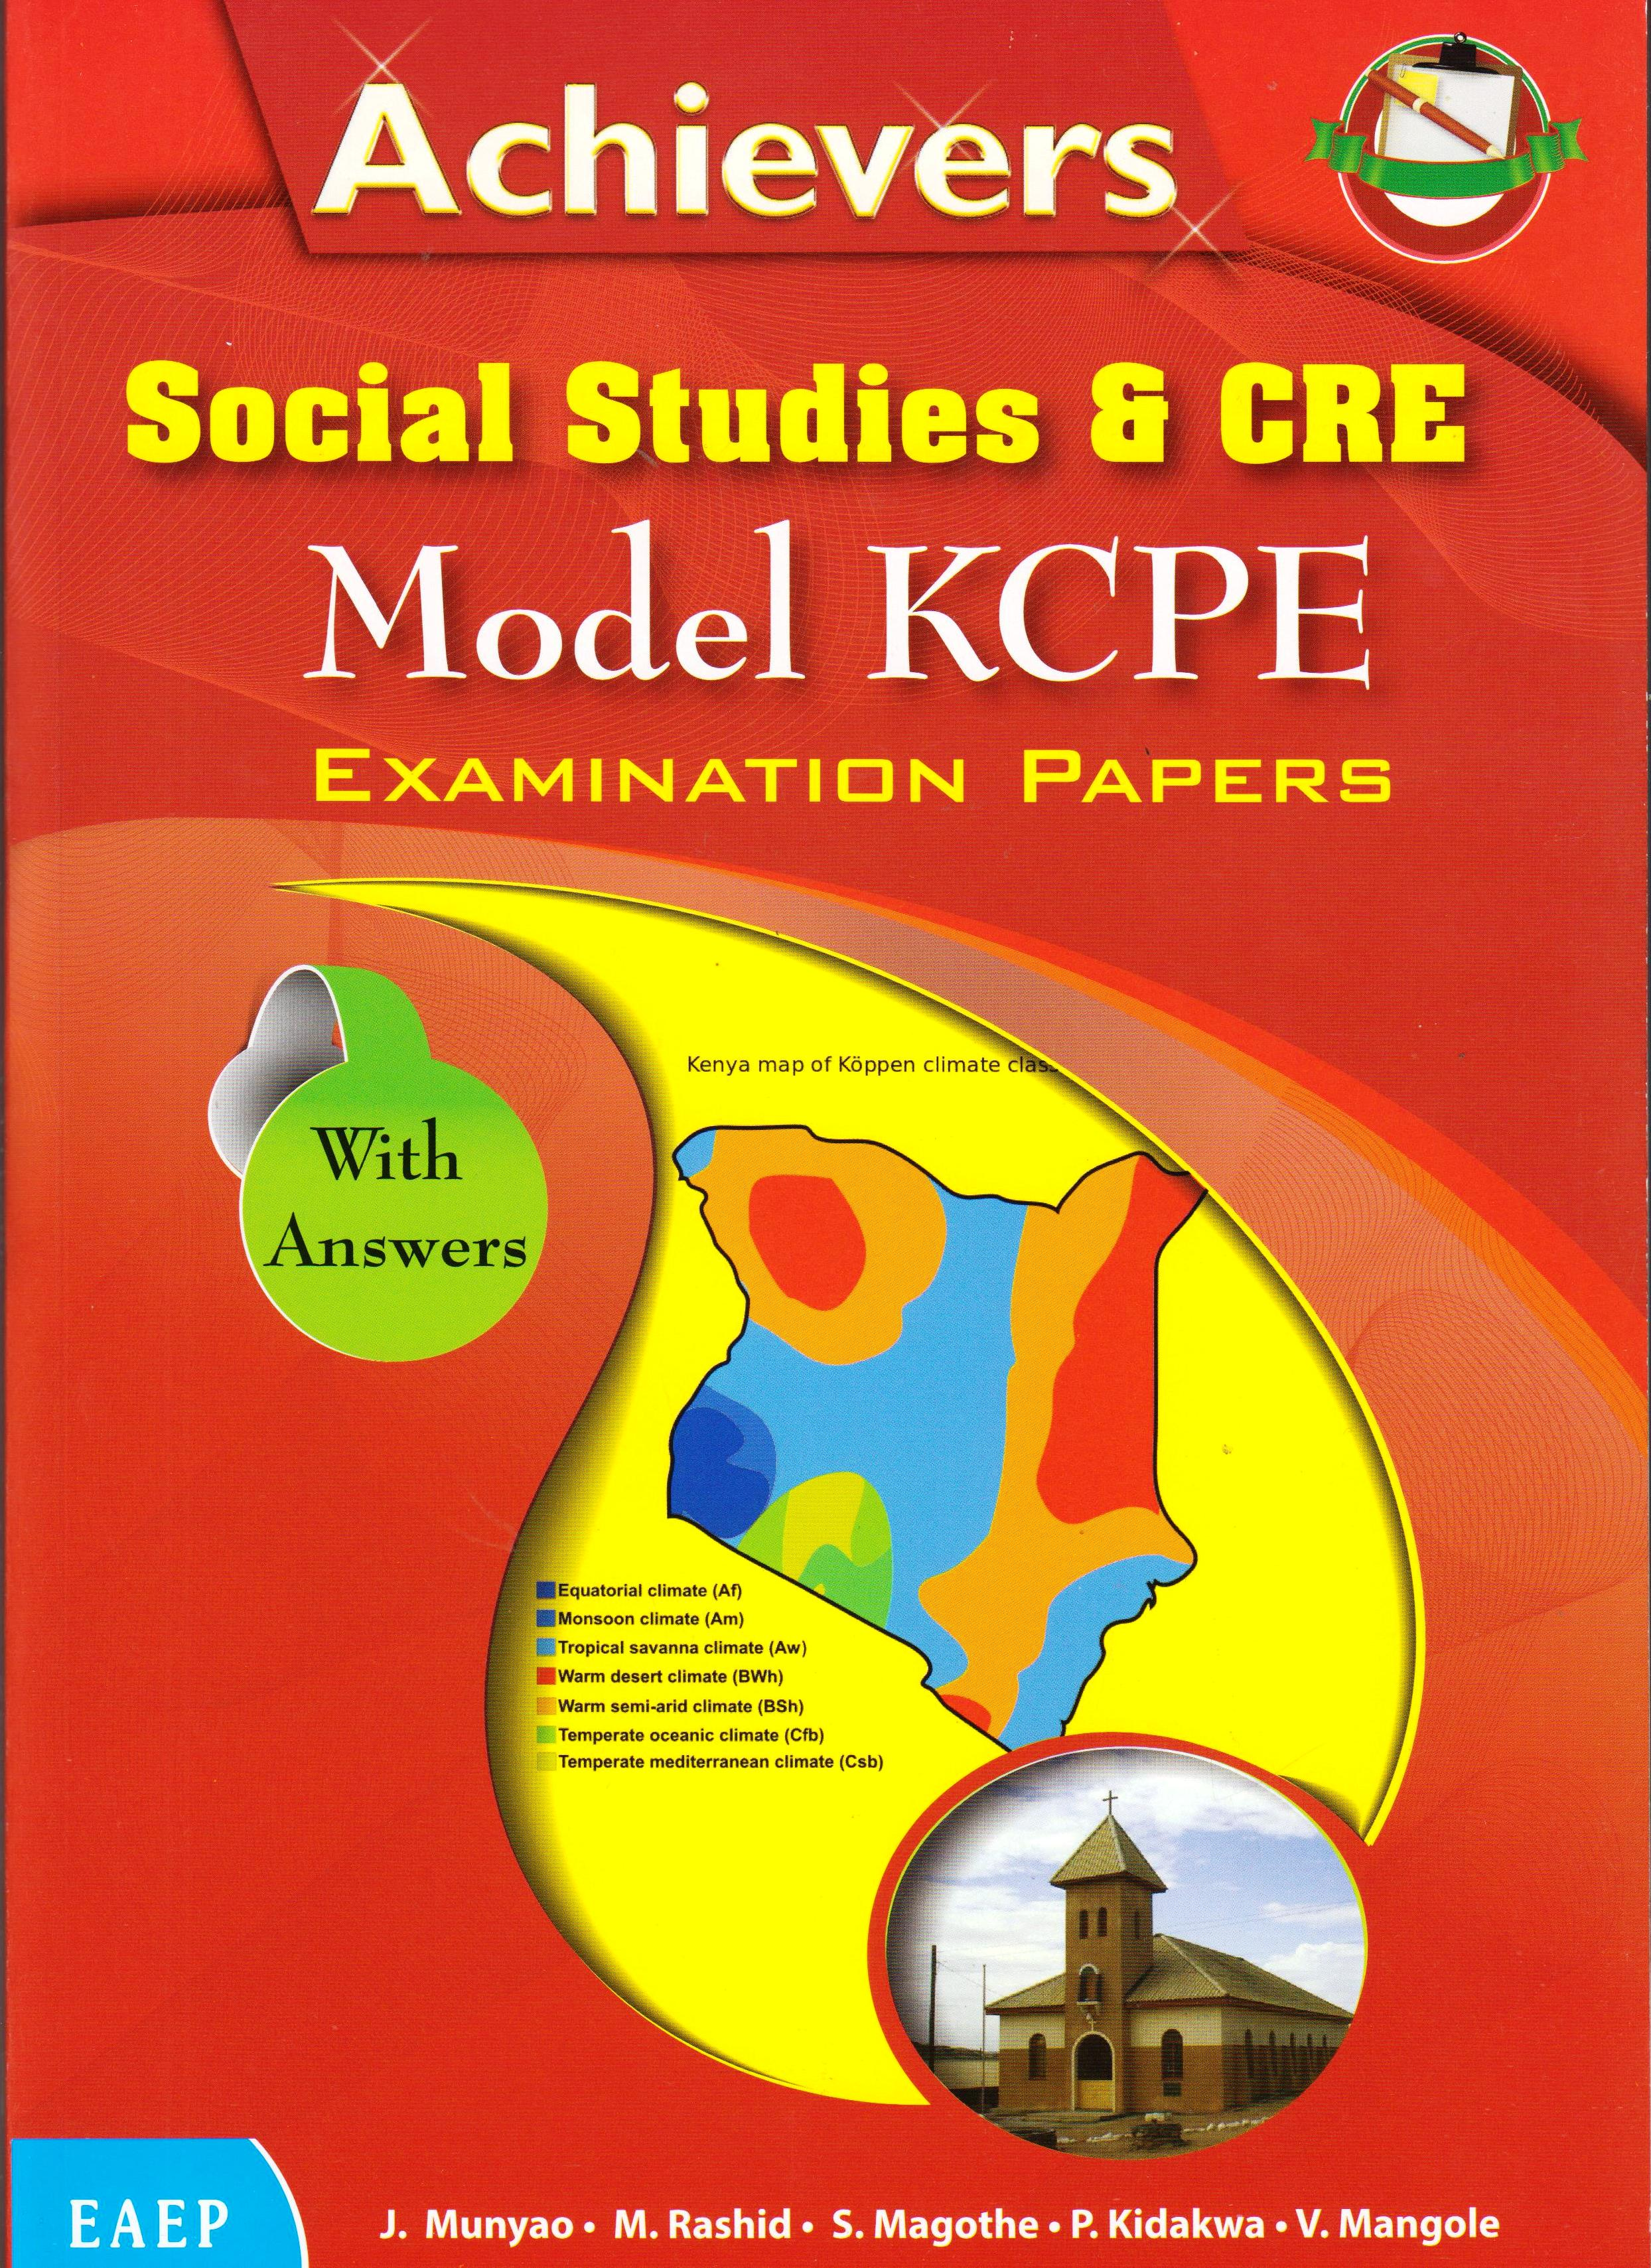 Achievers Social Studies & CRE Model KCPE | Books, Stationery, Computers,  Laptops and more  Buy online and get free delivery on orders above Ksh